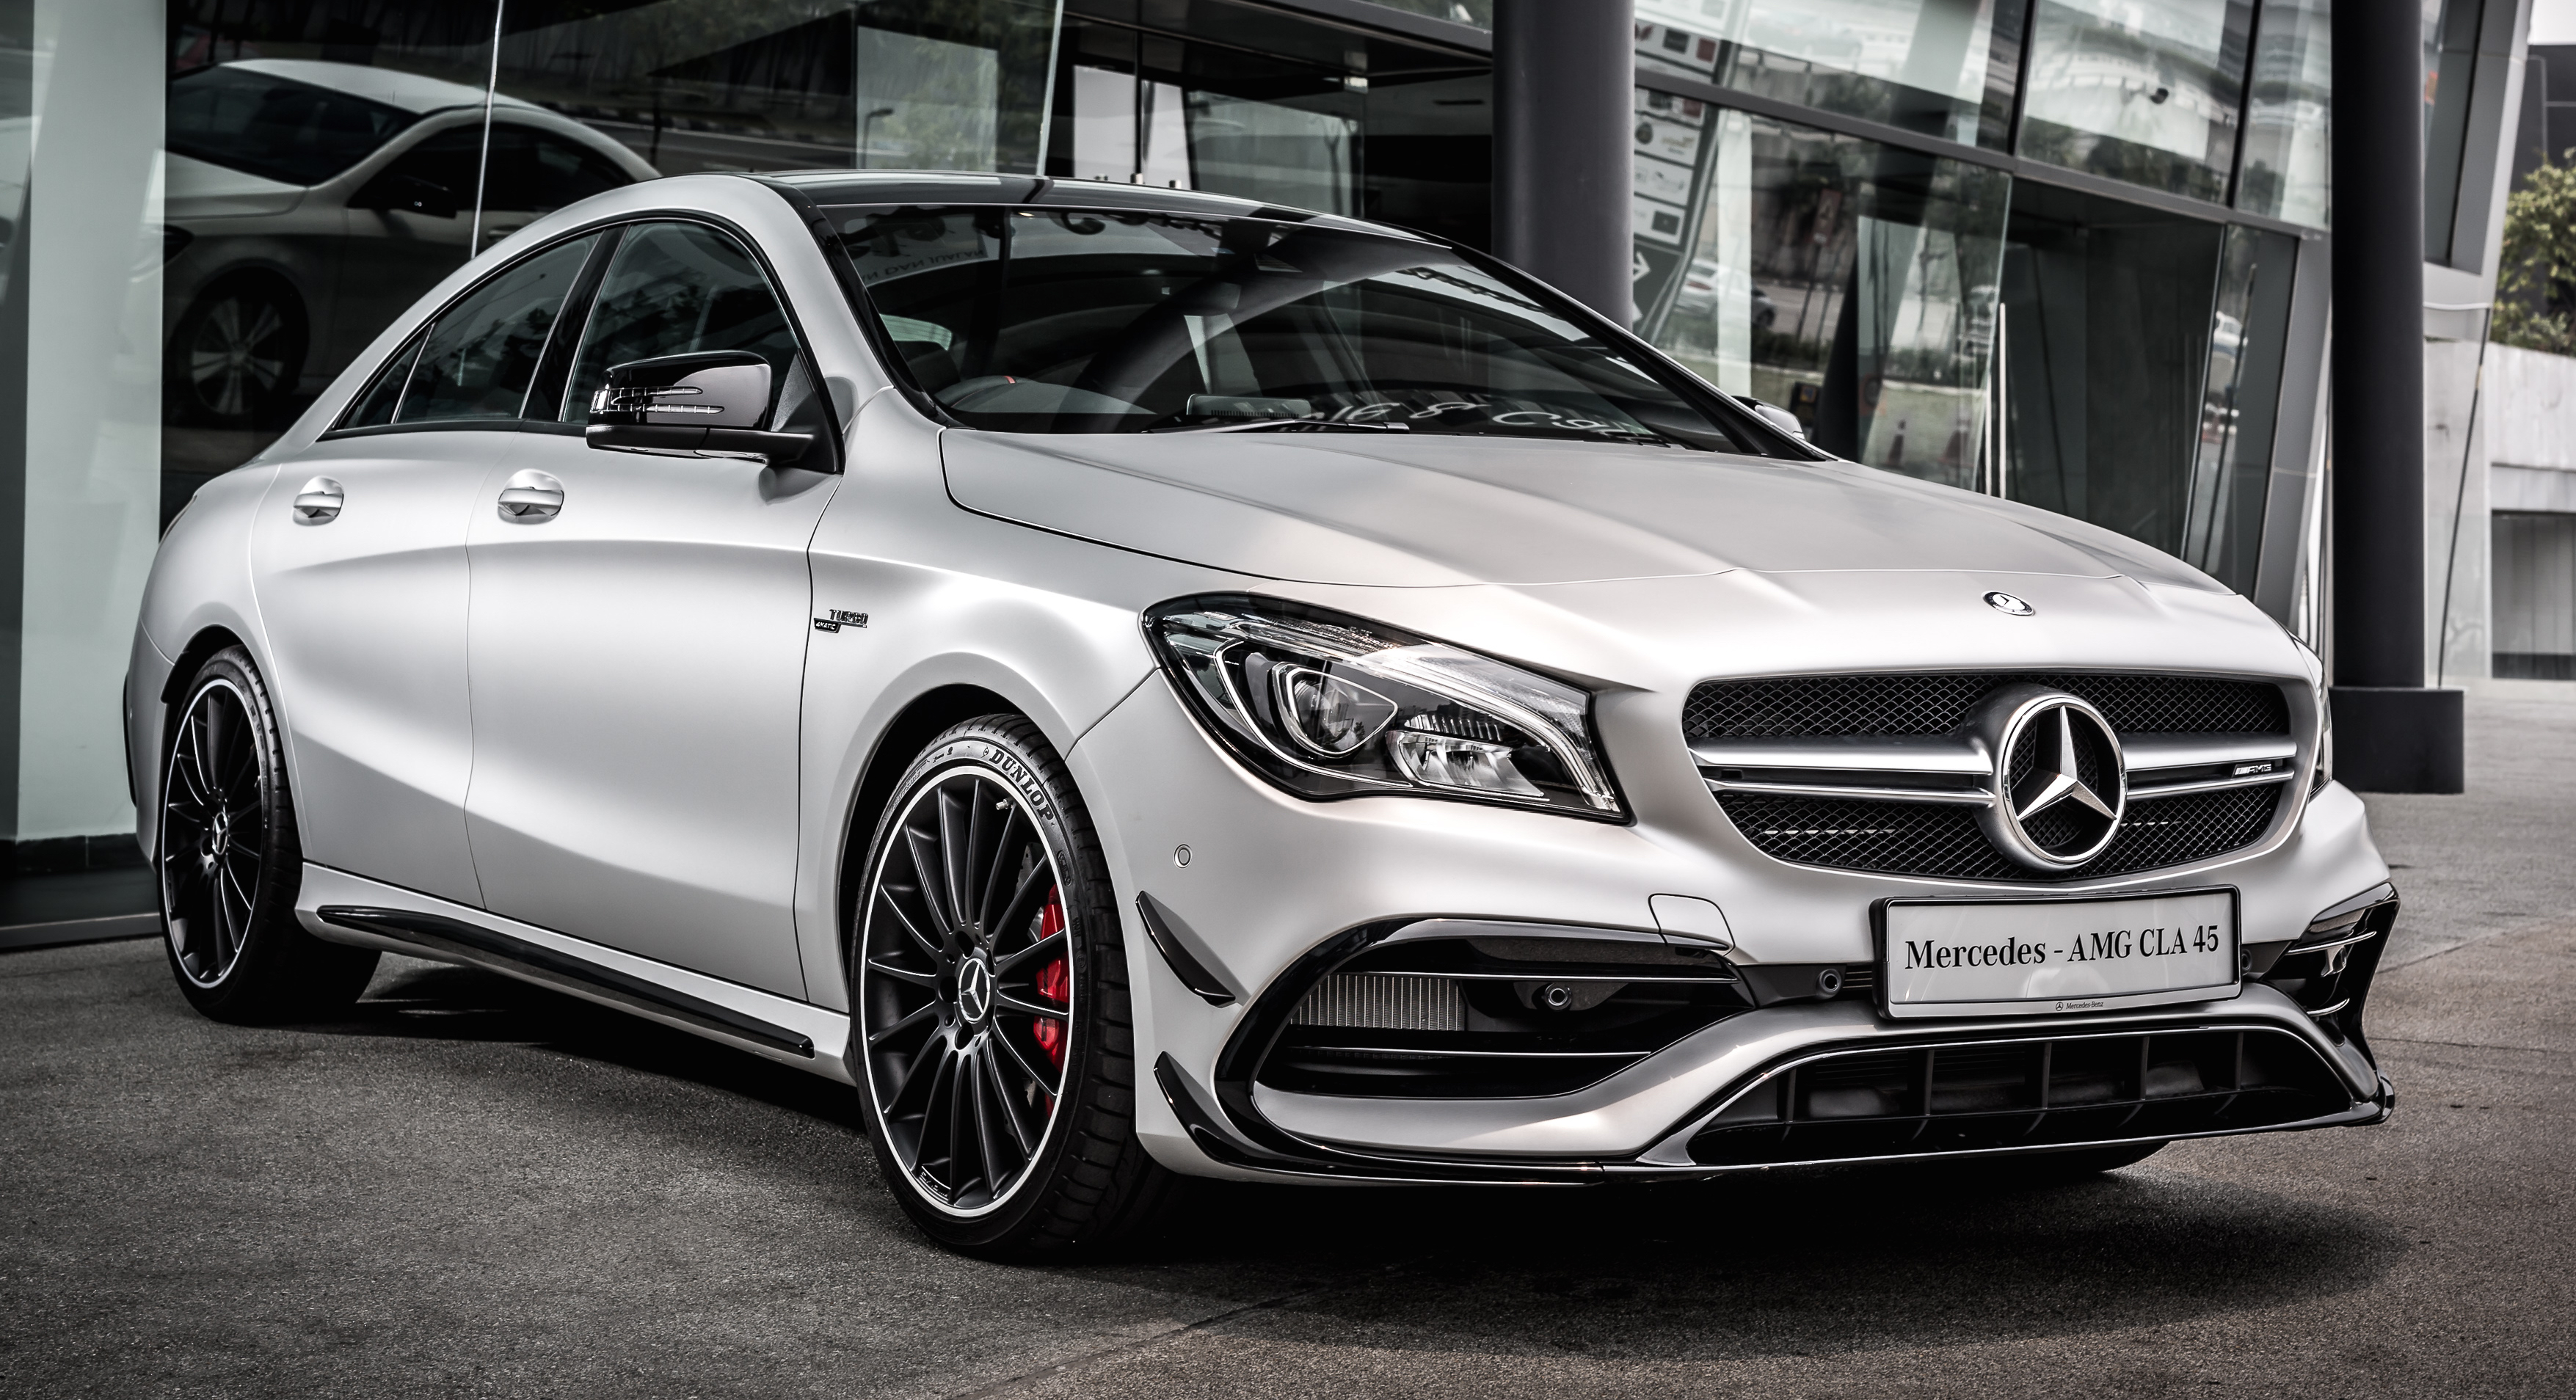 mercedes benz cla facelift launched in m 39 sia cla200 rm237k cla250 rm279k amg cla45 at rm409k. Black Bedroom Furniture Sets. Home Design Ideas